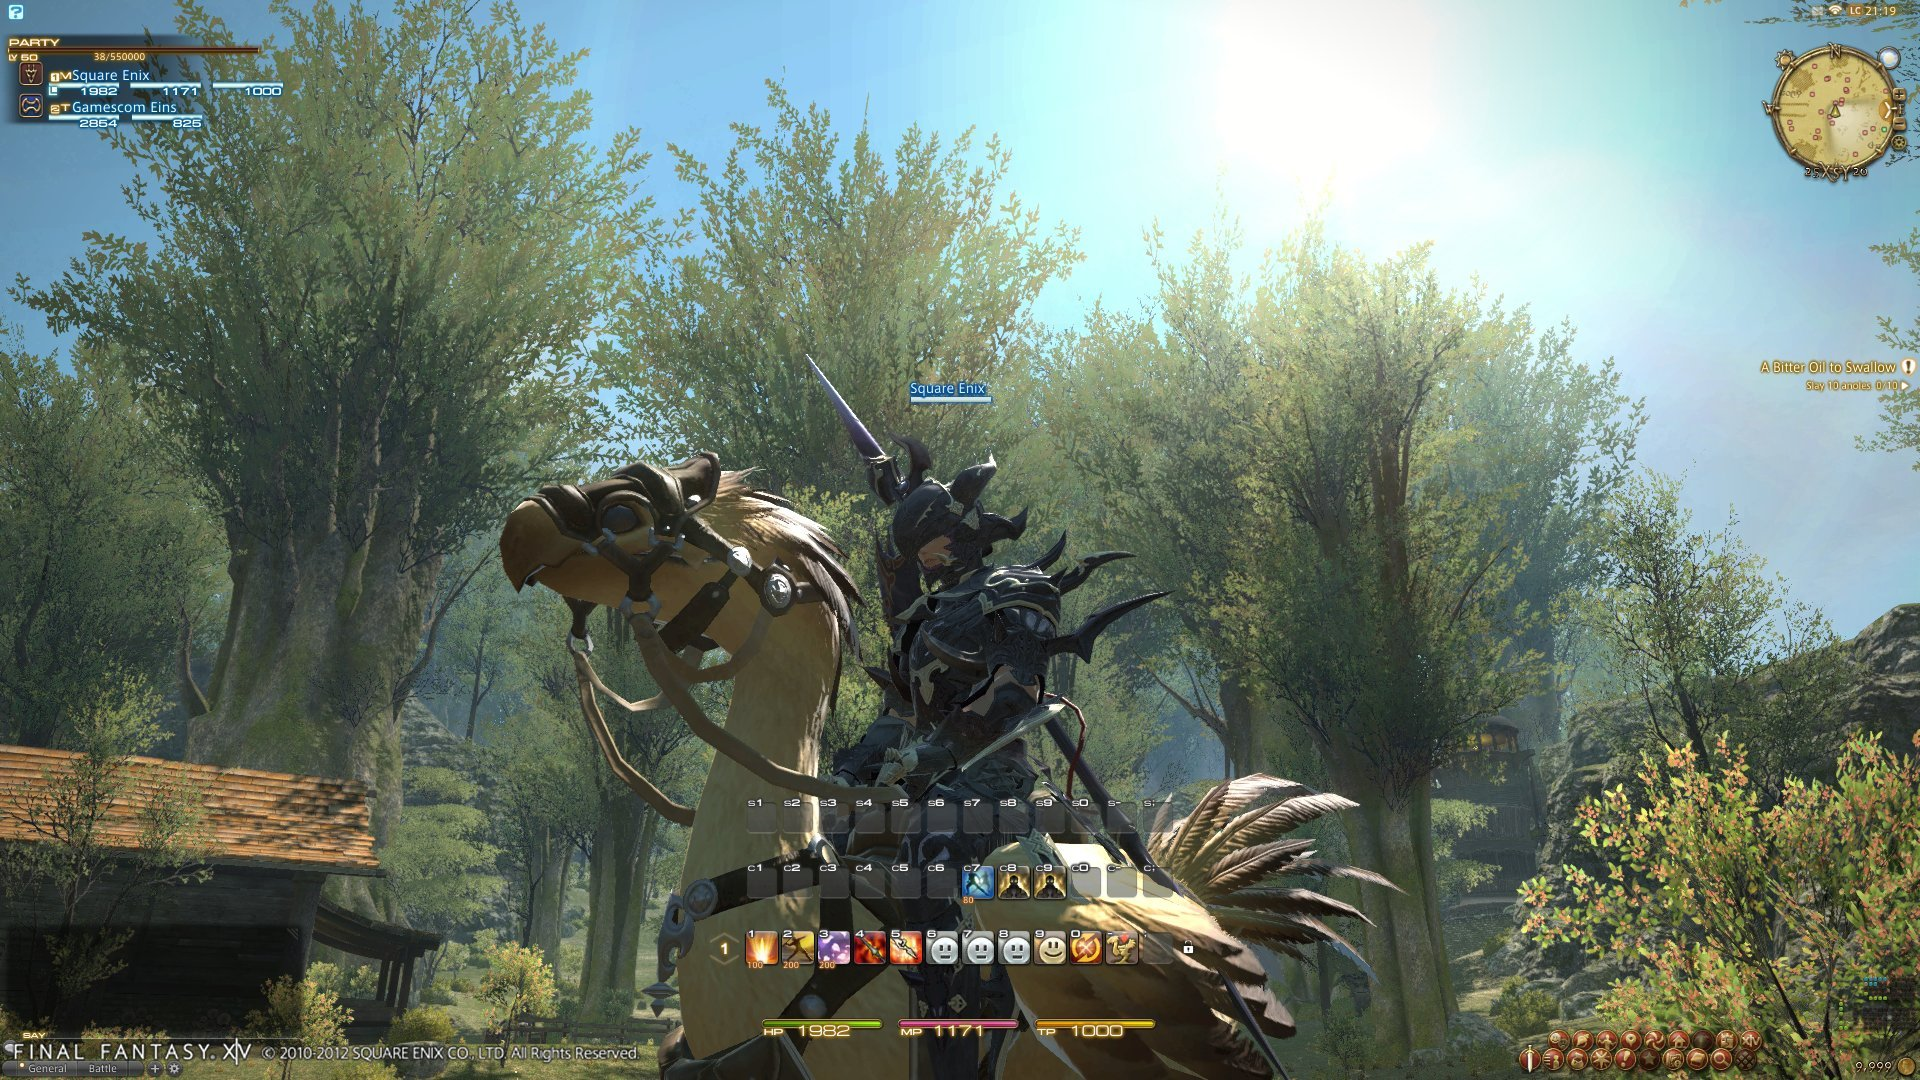 Final Fantasy XIV Screenshot - PC Version